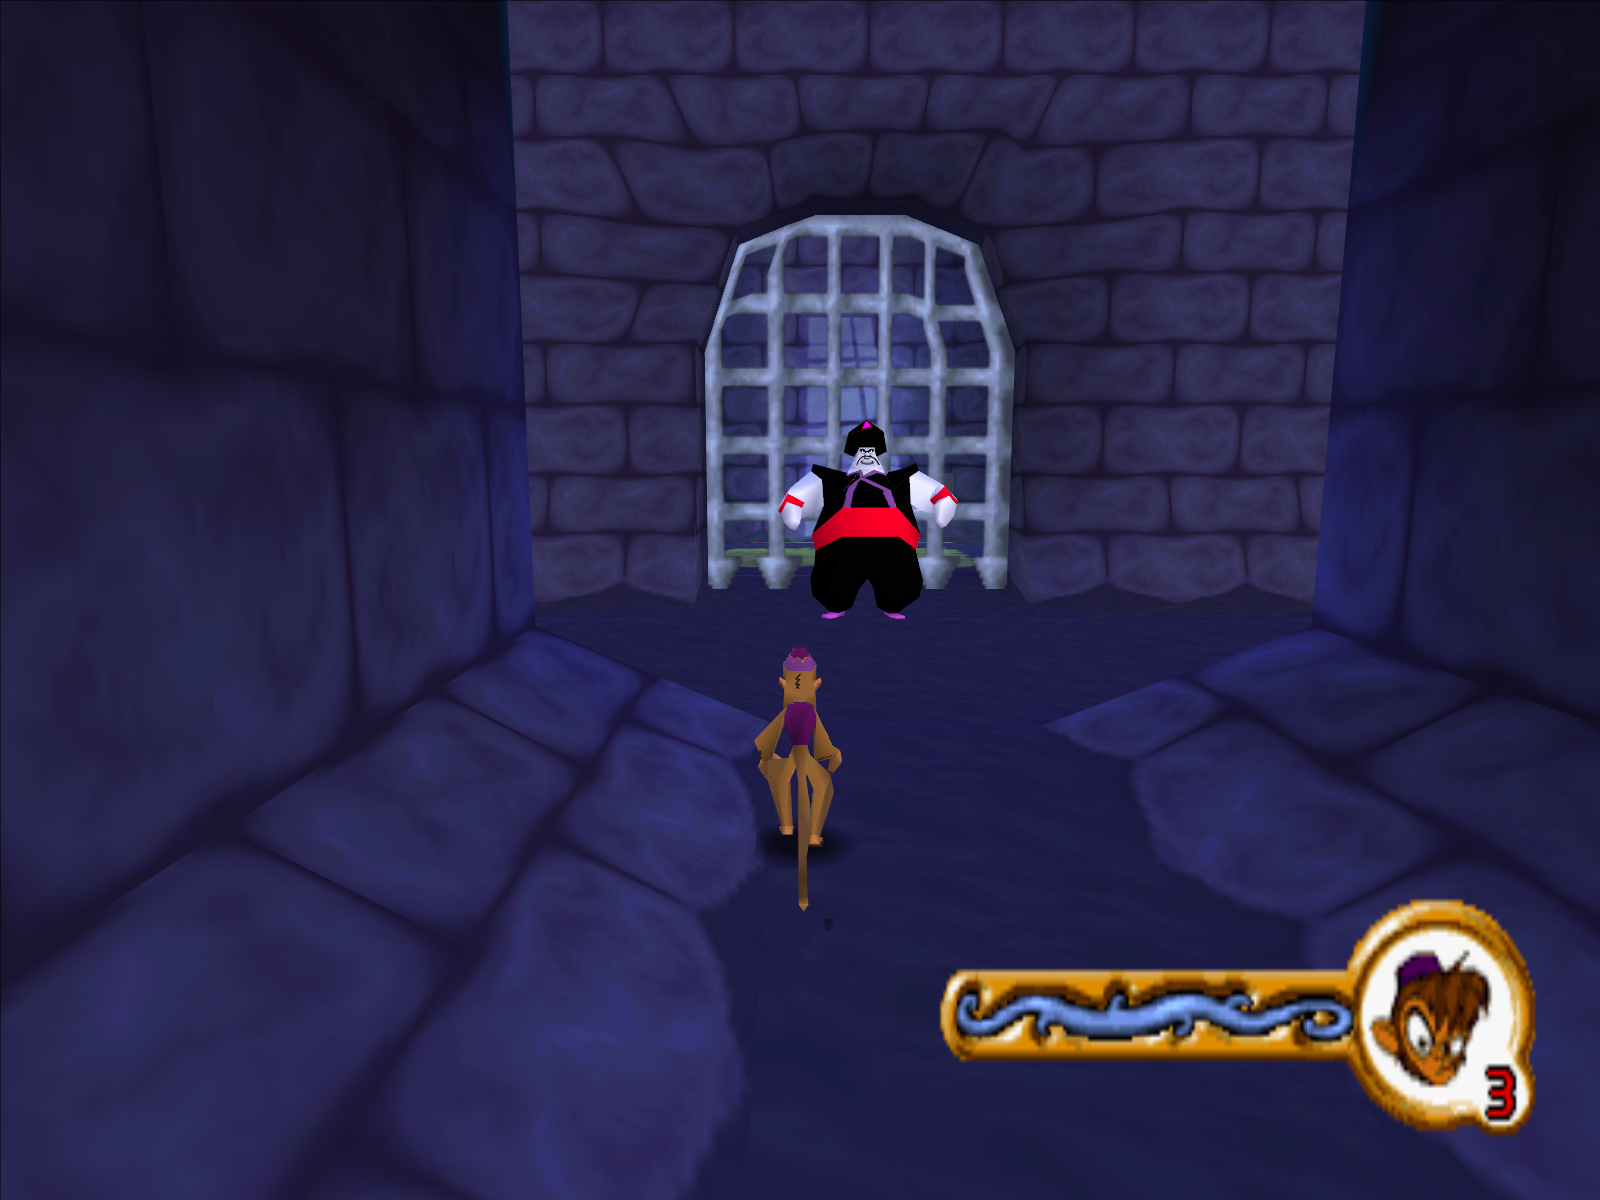 Disney's Aladdin in Nasira's Revenge Windows As Abu you will have to try and rescue Aladdin.